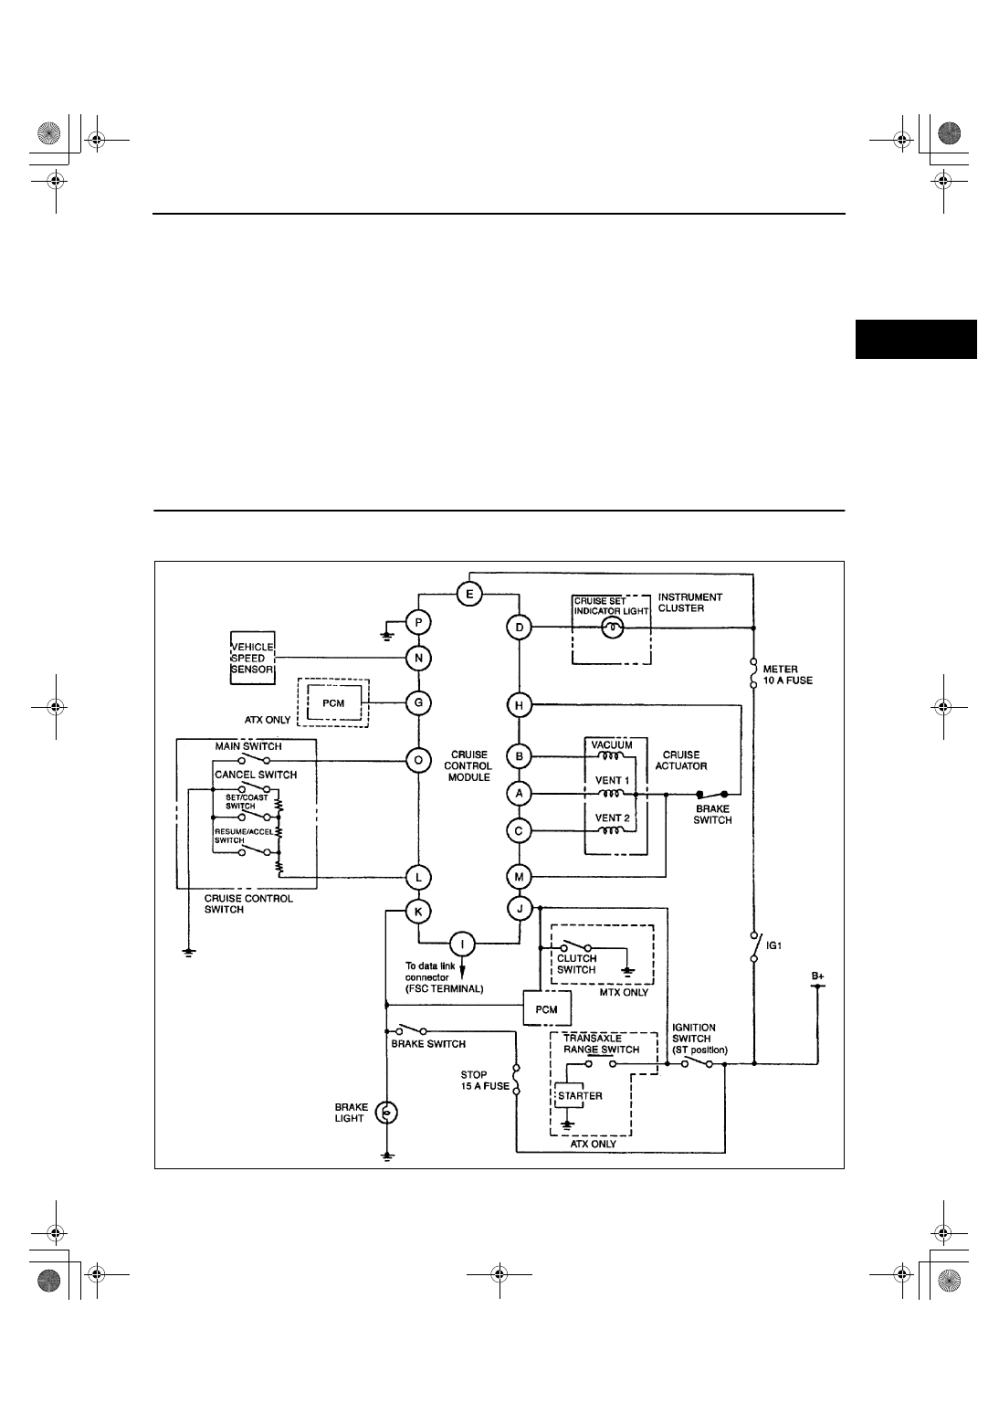 medium resolution of skoda cruise control diagram wiring diagram mazda cruise control diagram wiring diagram load skoda